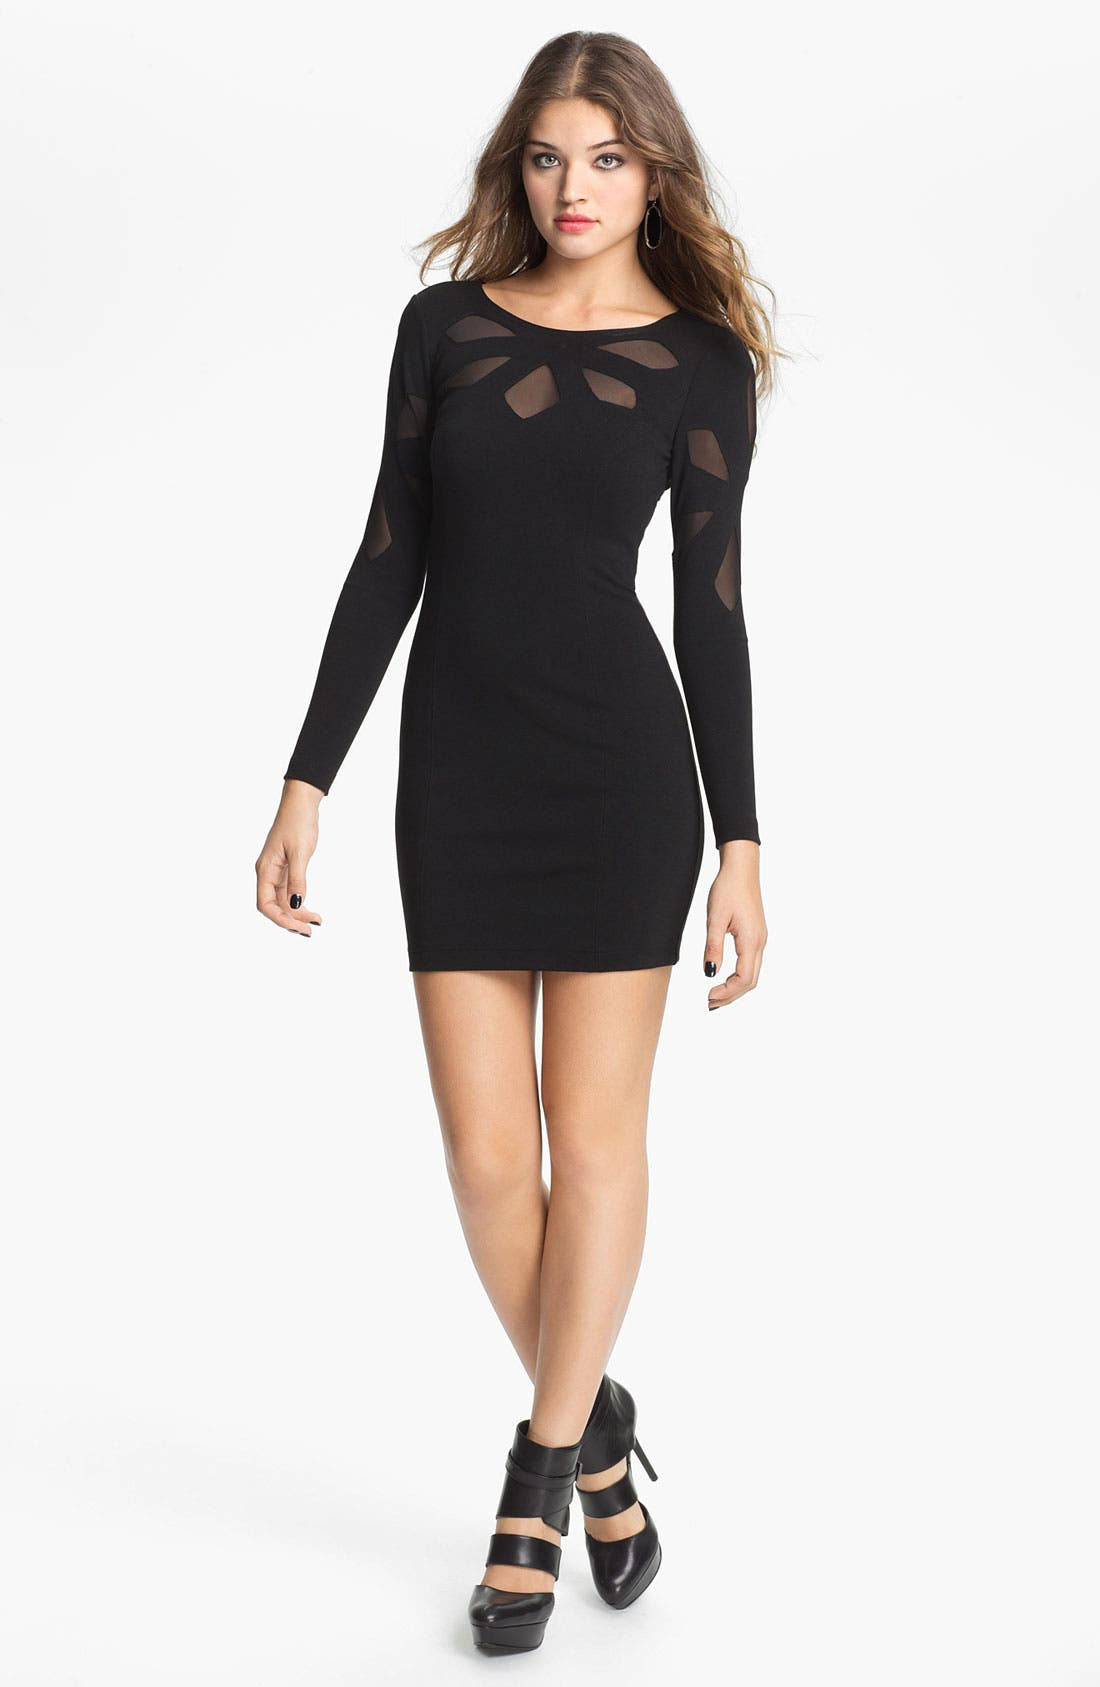 Main Image - Keepsake the Label 'Love Out of Lust' Long Sleeve Minidress